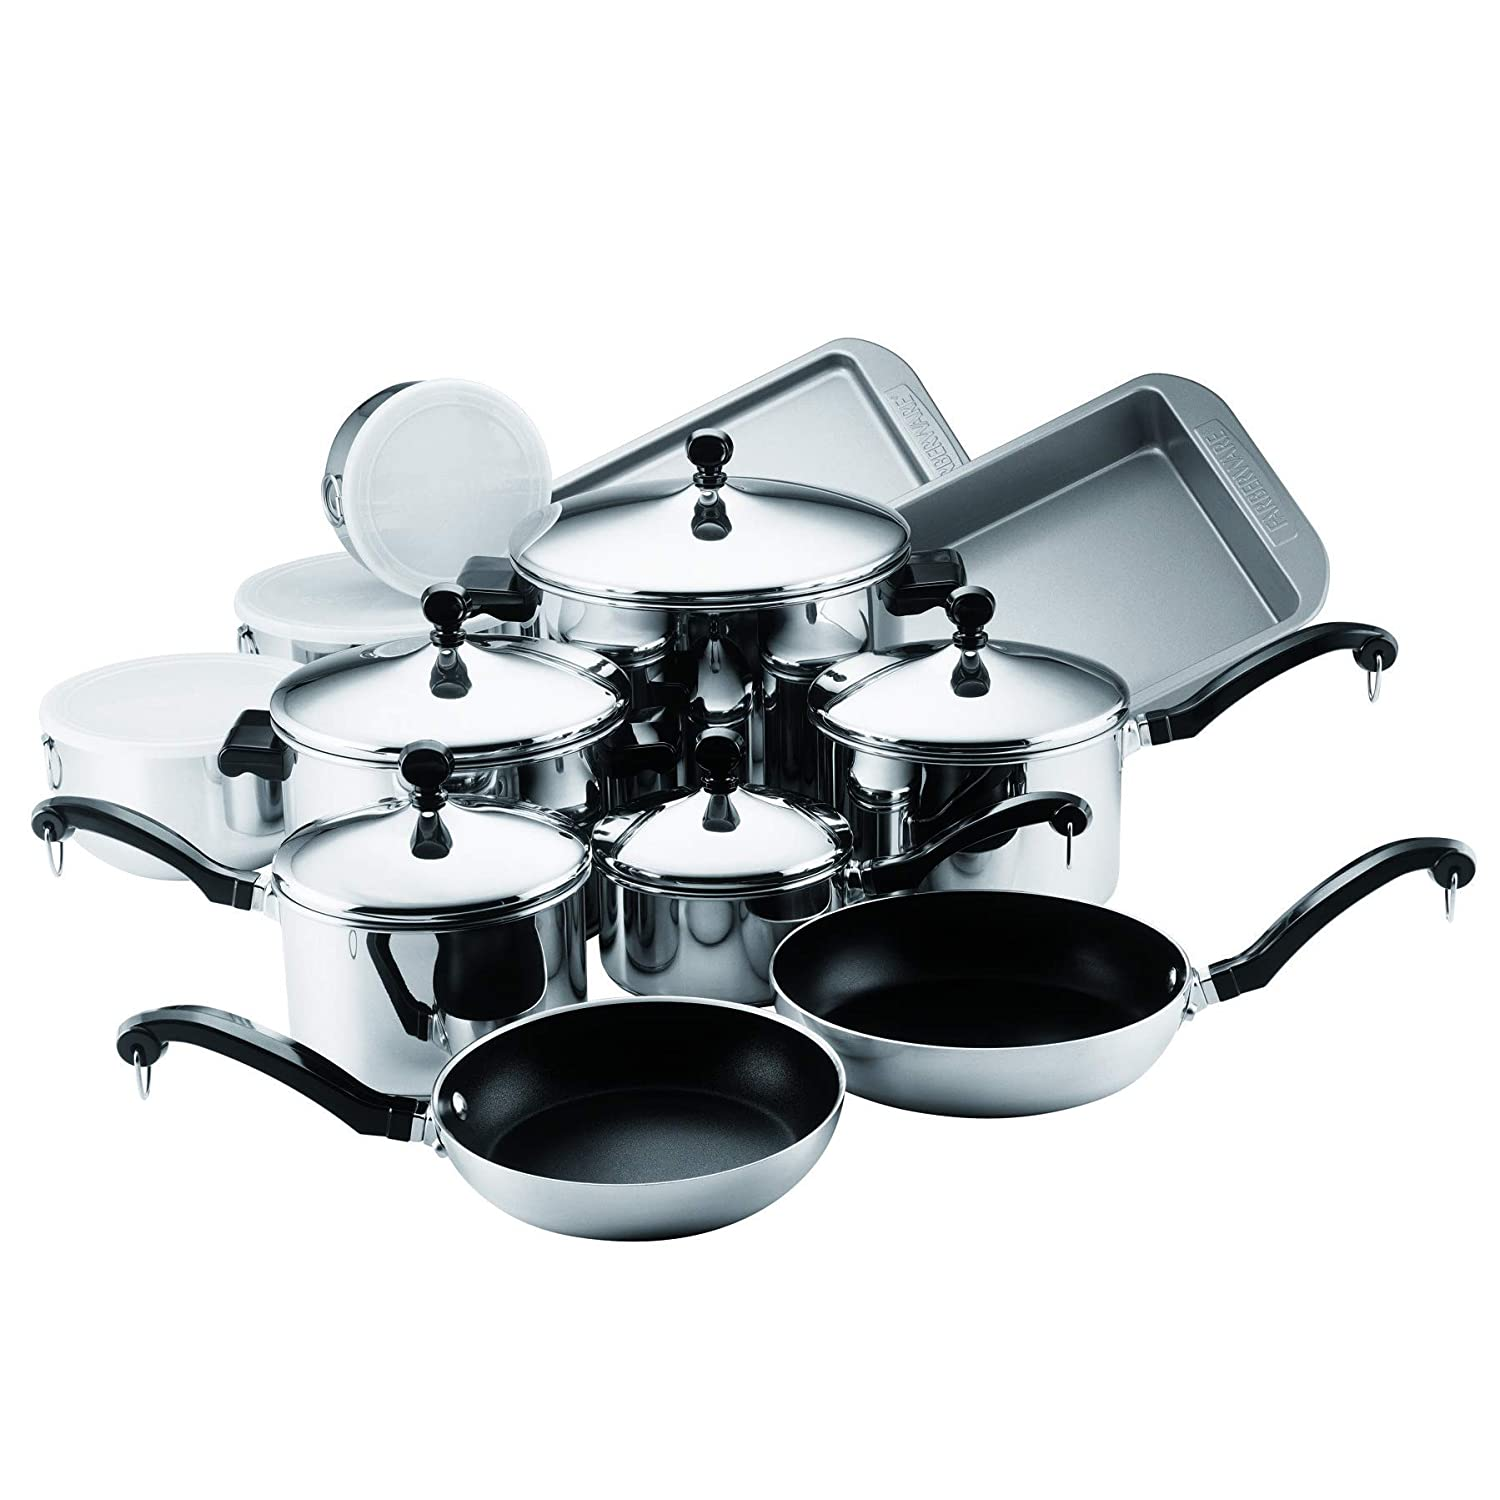 Top 5 Best Cookware Under $200 (2020 Reviews & Buying Guide) 3